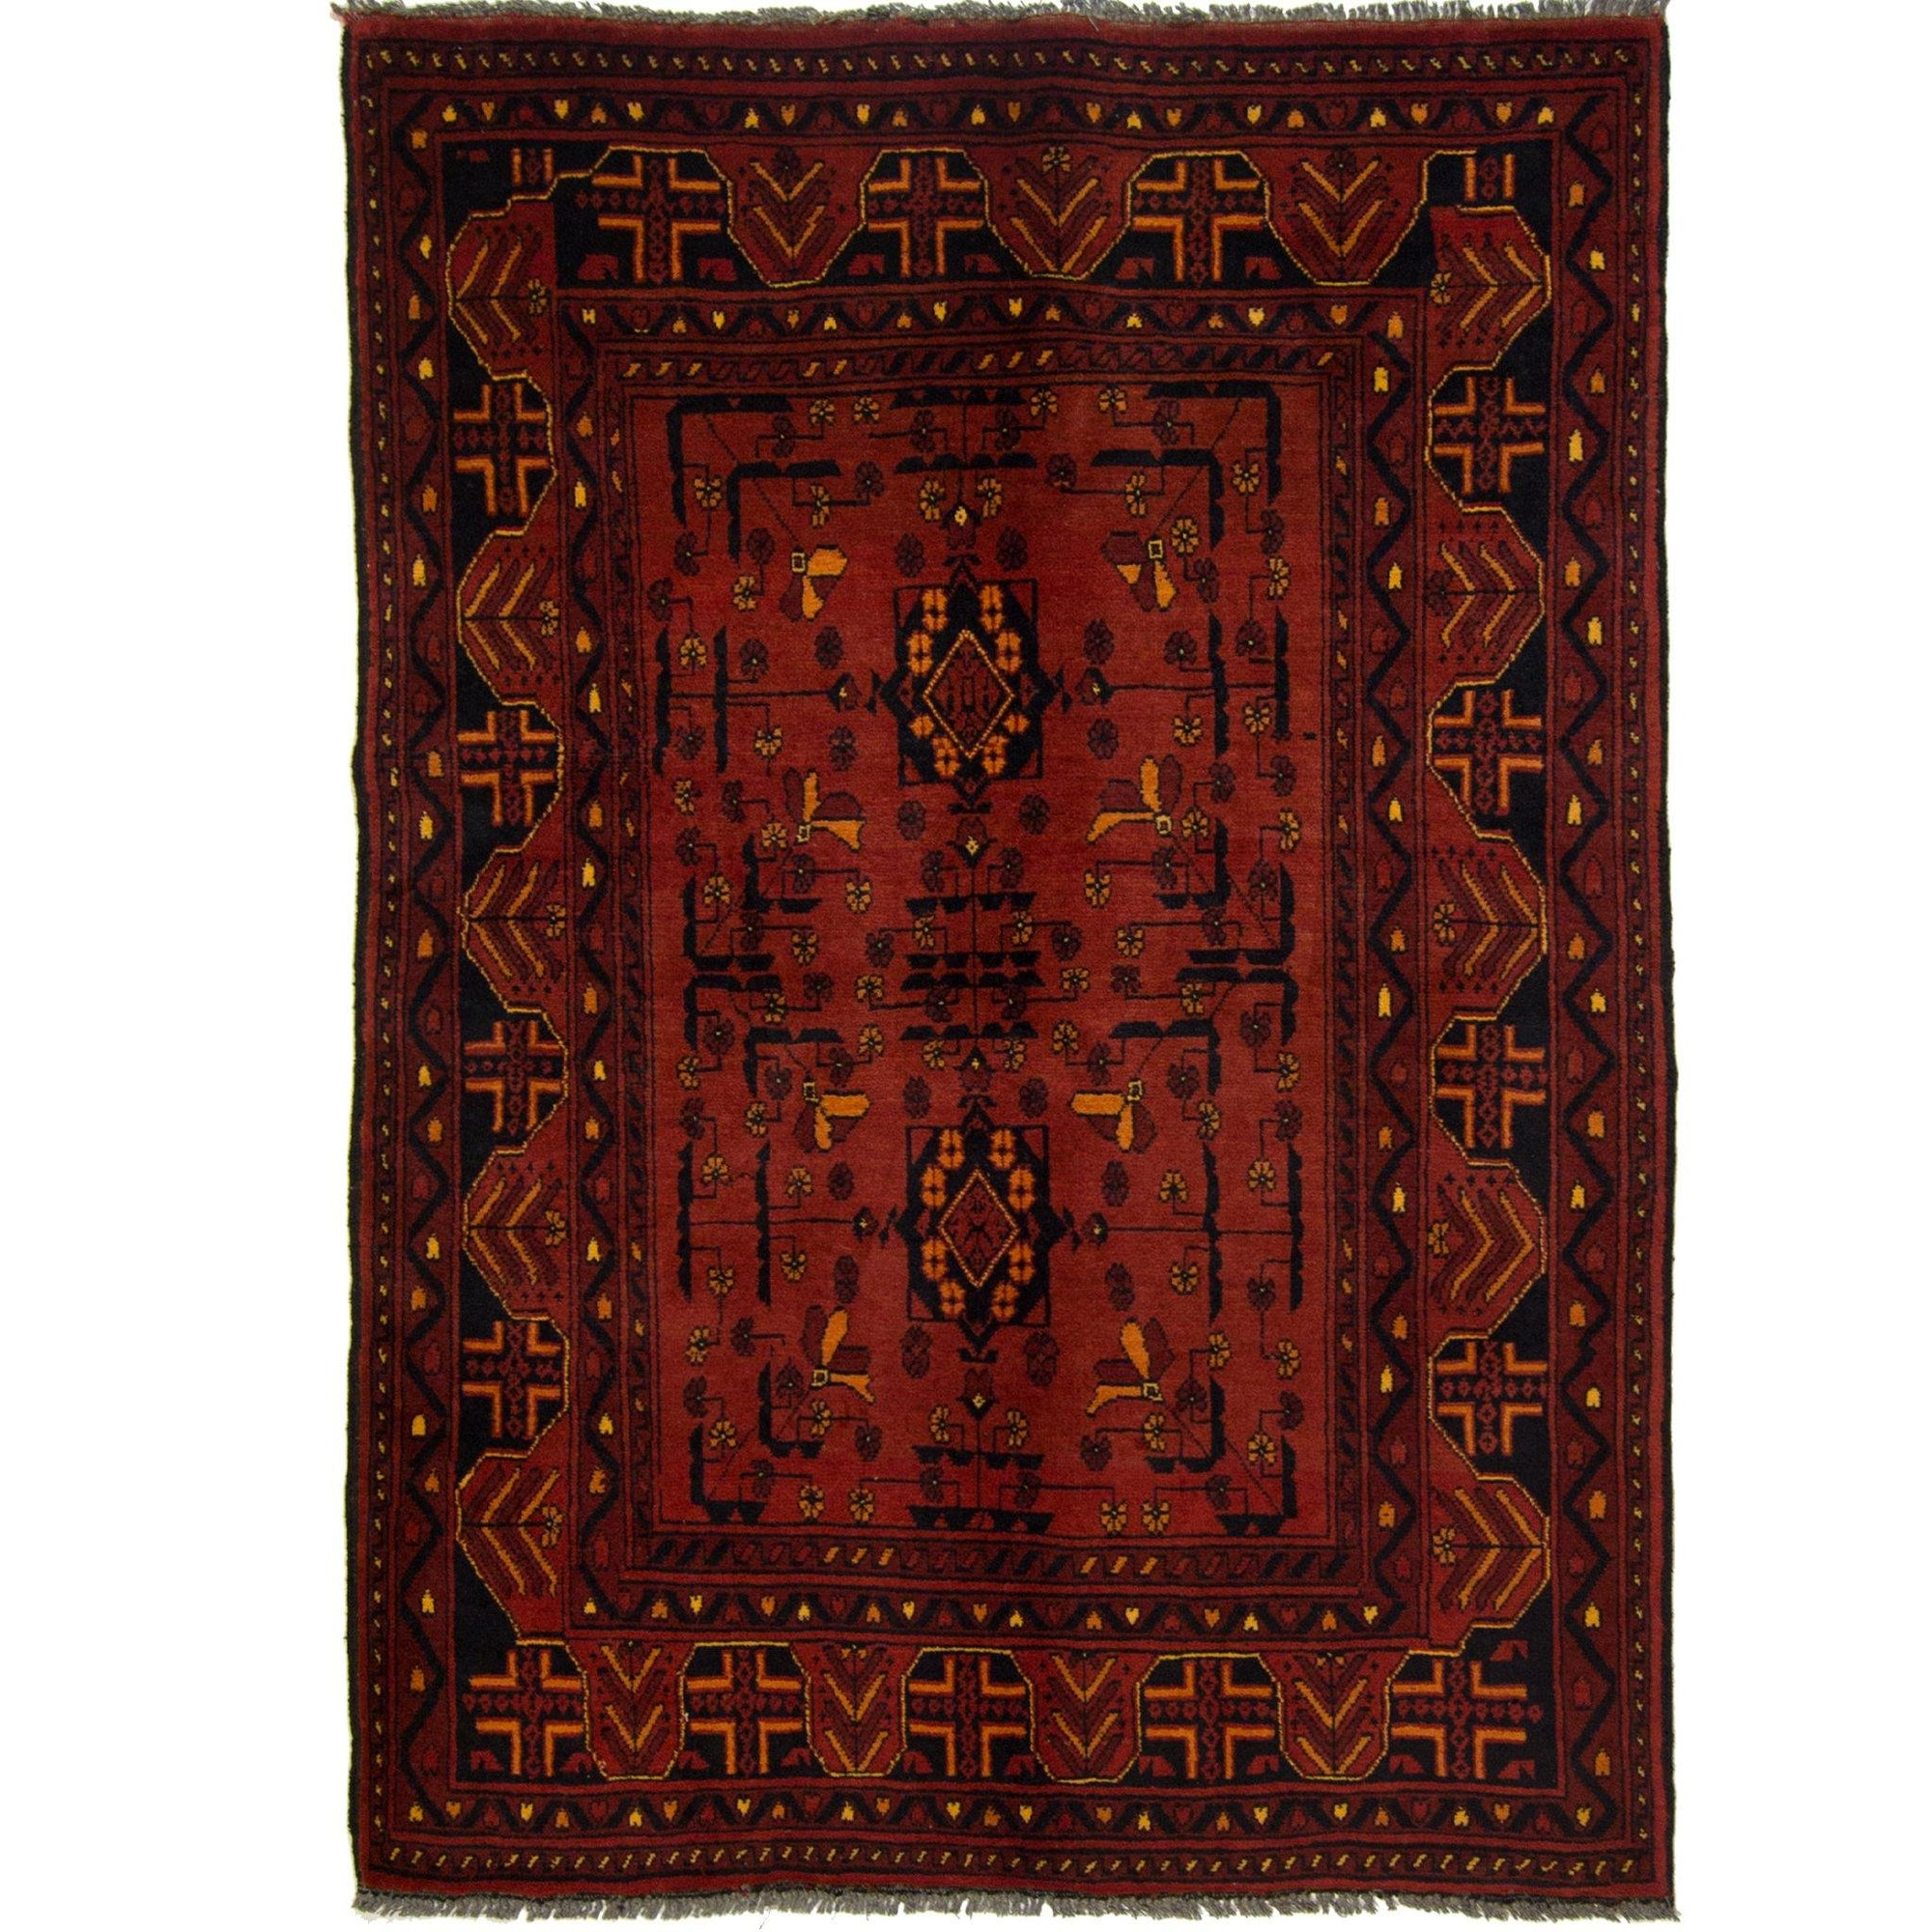 Fine Hand-knotted Wool Afghan Turkmen Rug 100cm x 139cm Persian-Rug | House-of-Haghi | NewMarket | Auckland | NZ | Handmade Persian Rugs | Hand Knotted Persian Rugs